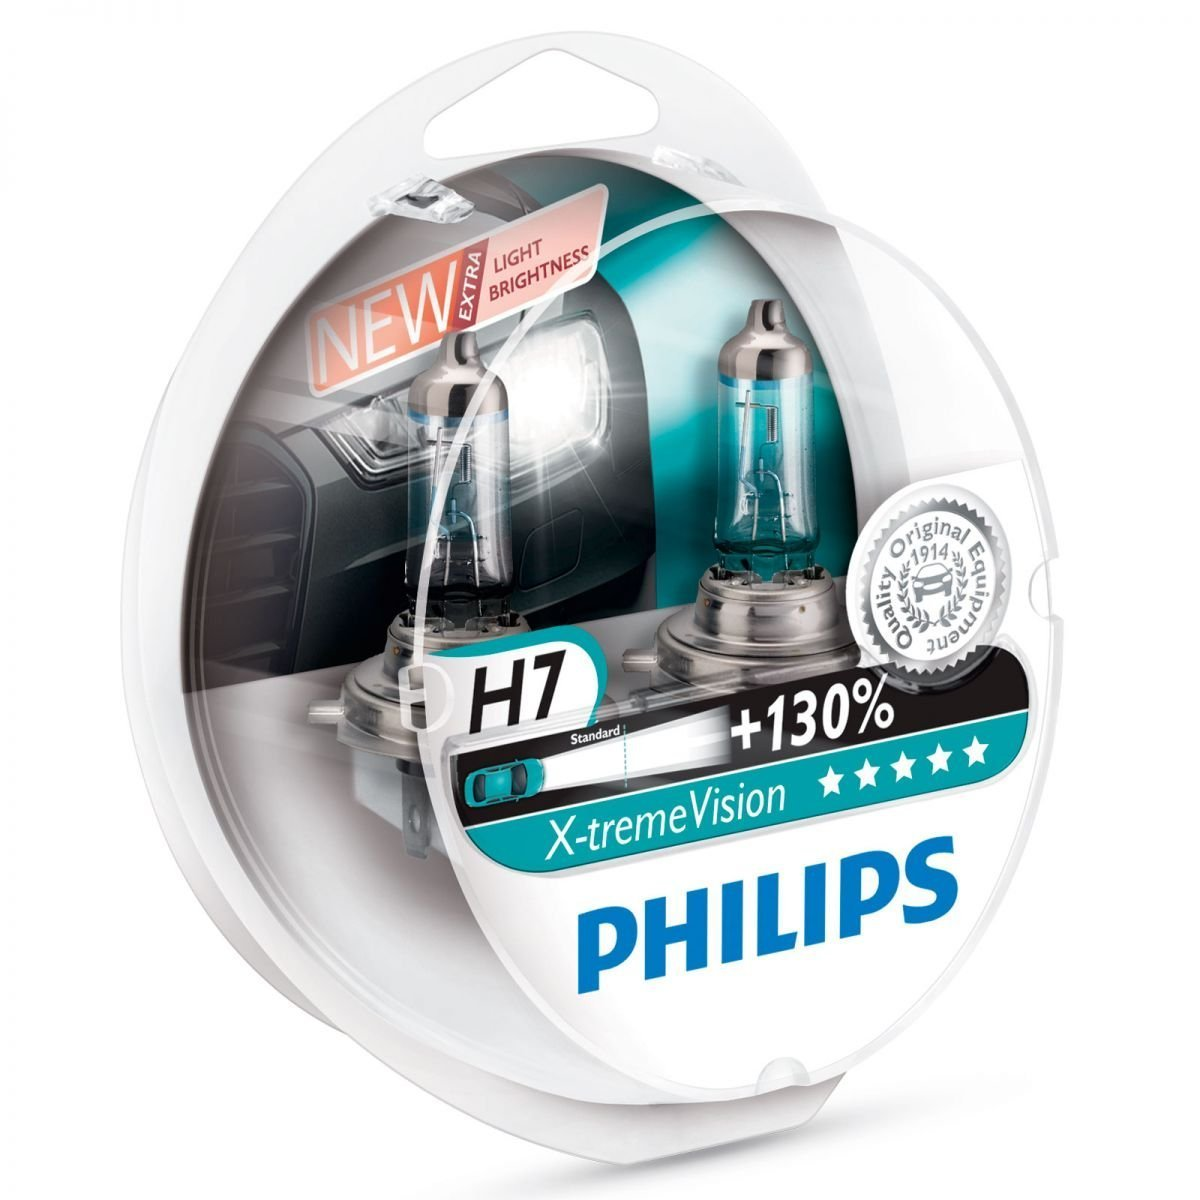 philips x-treme vision replacement halogen headlight bulbs